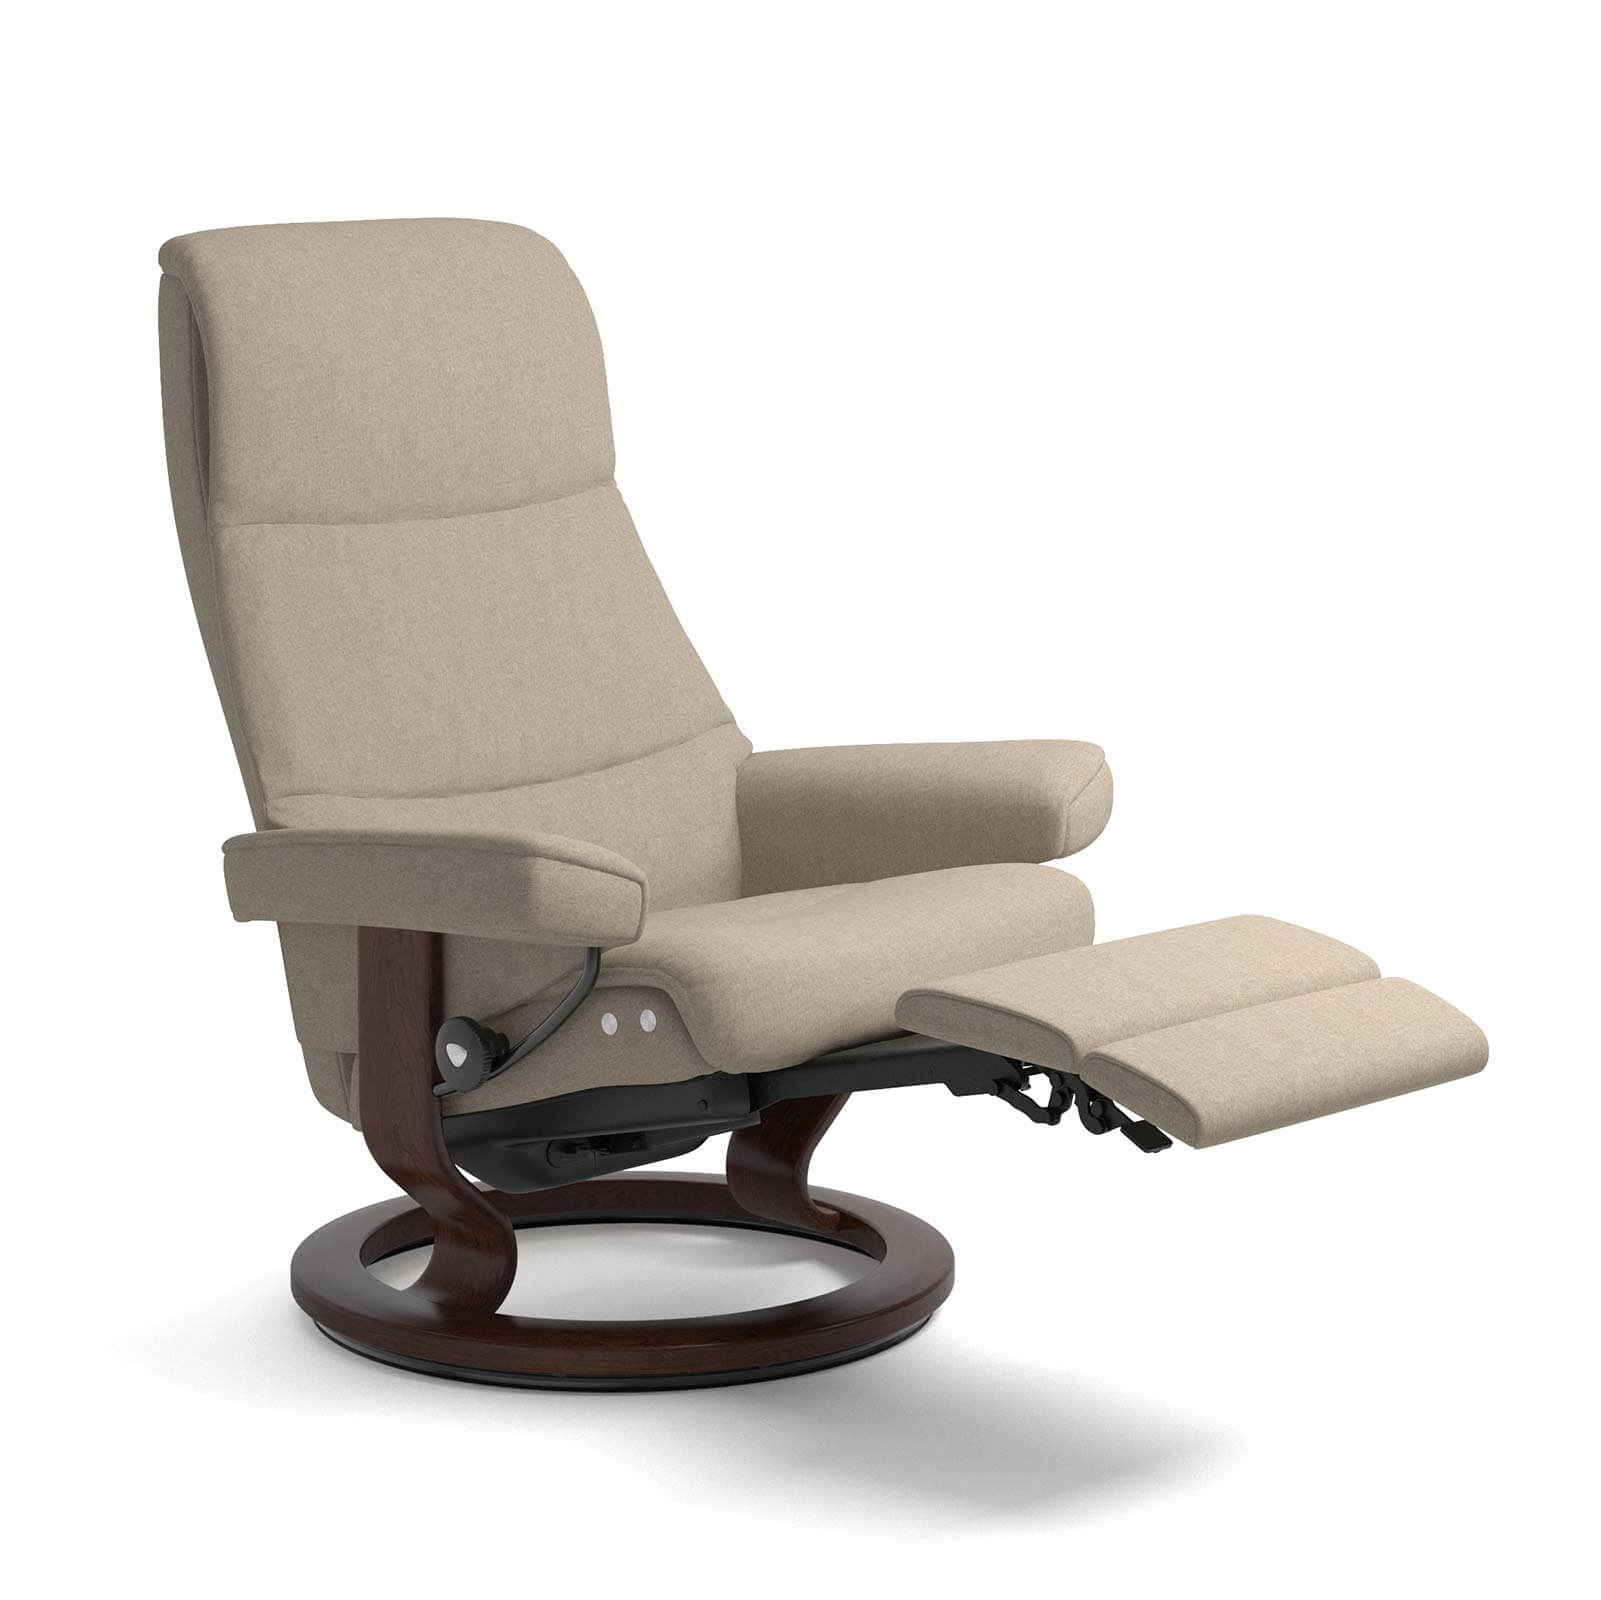 Stressless Sessel Stressless View Legcomfort Calido Light Beige Stressless